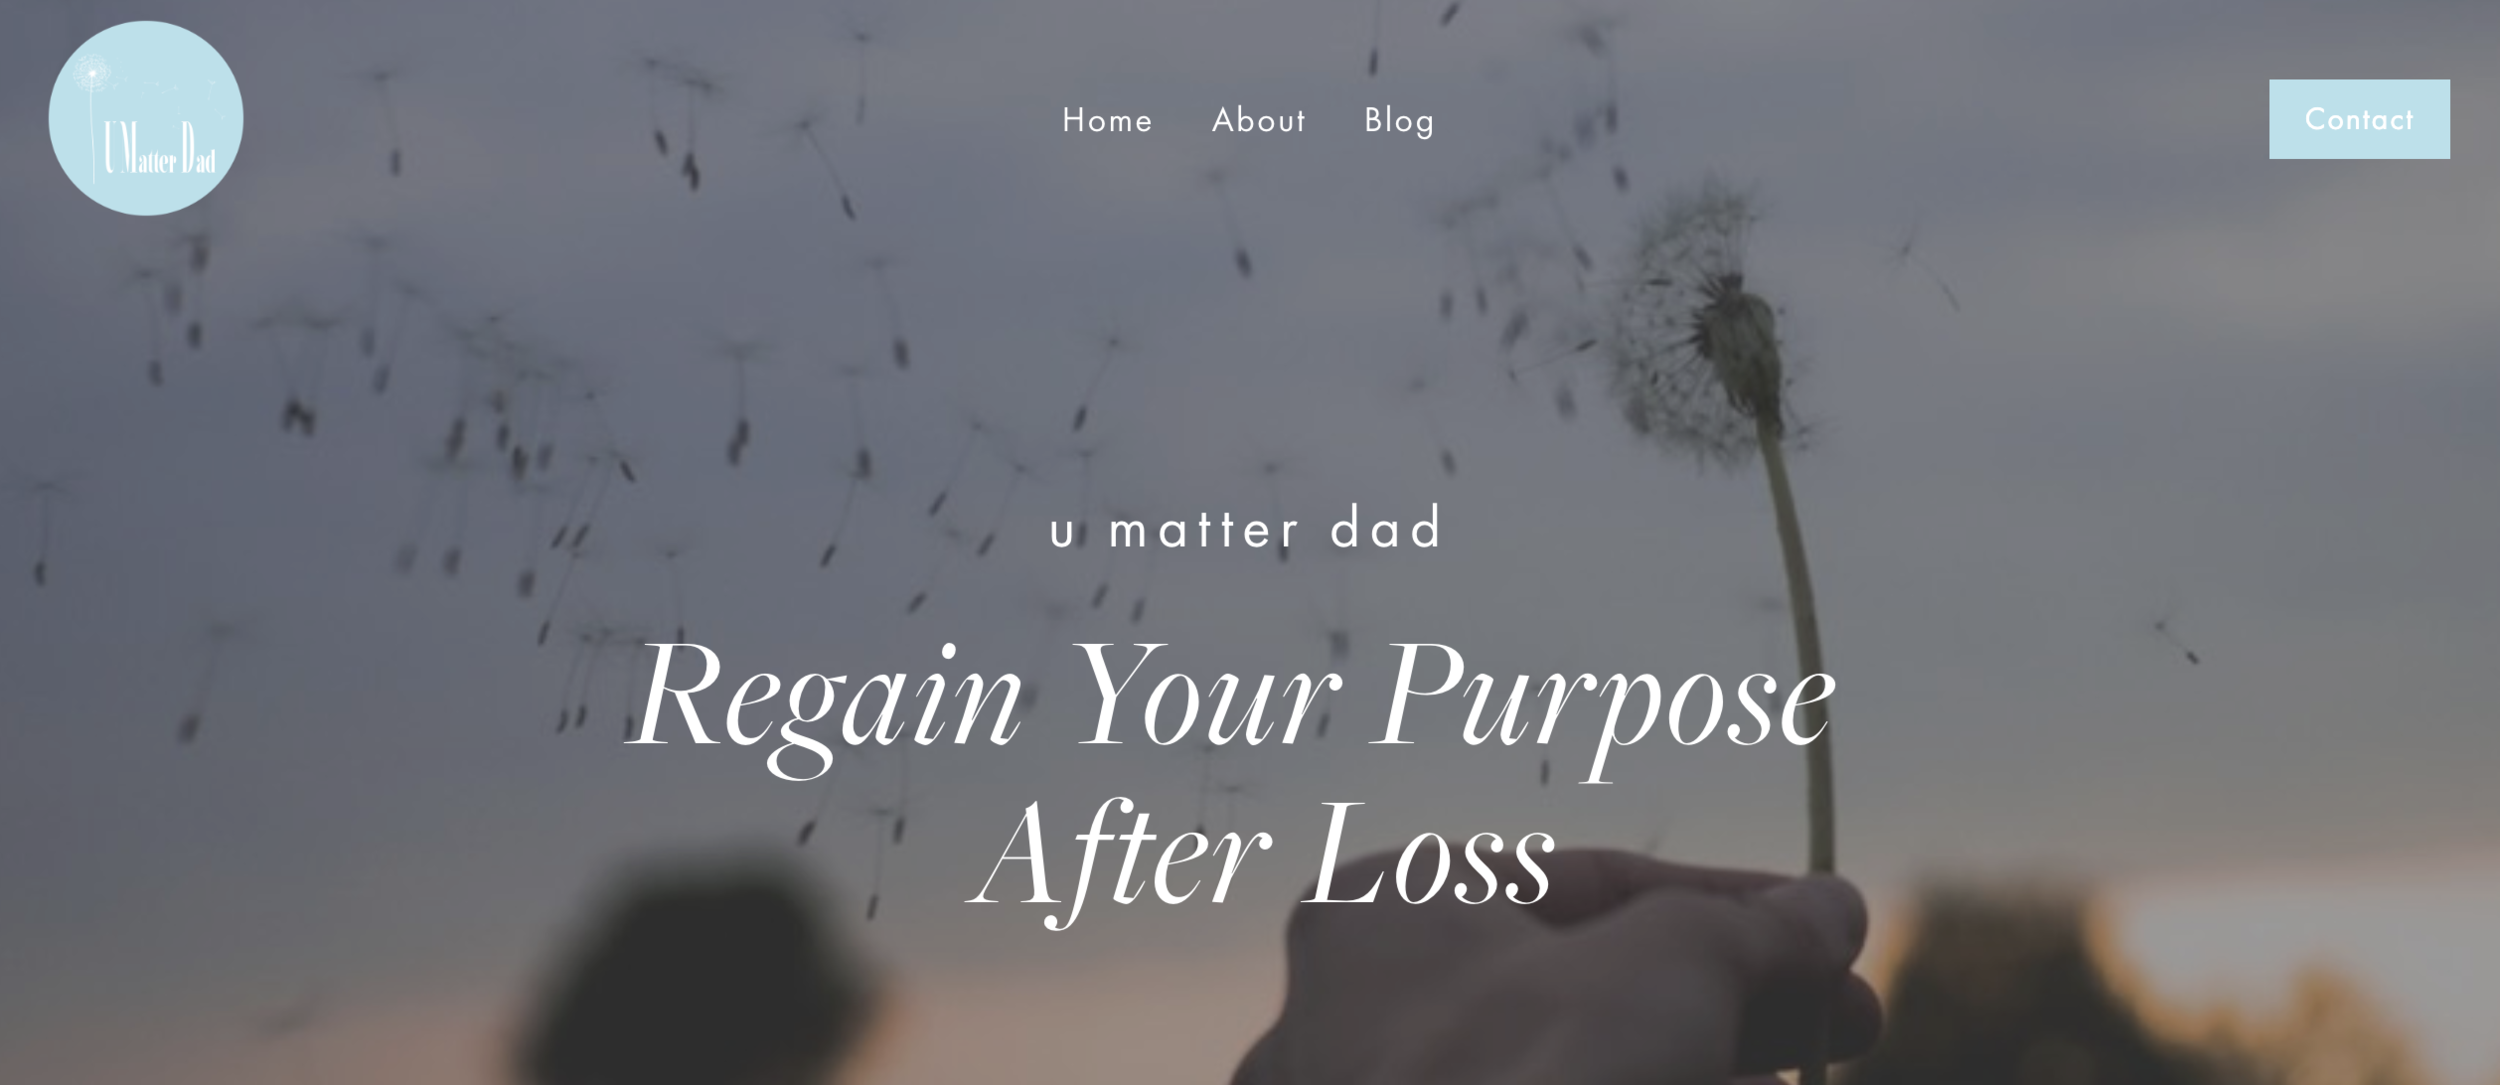 U matter dad home page.png